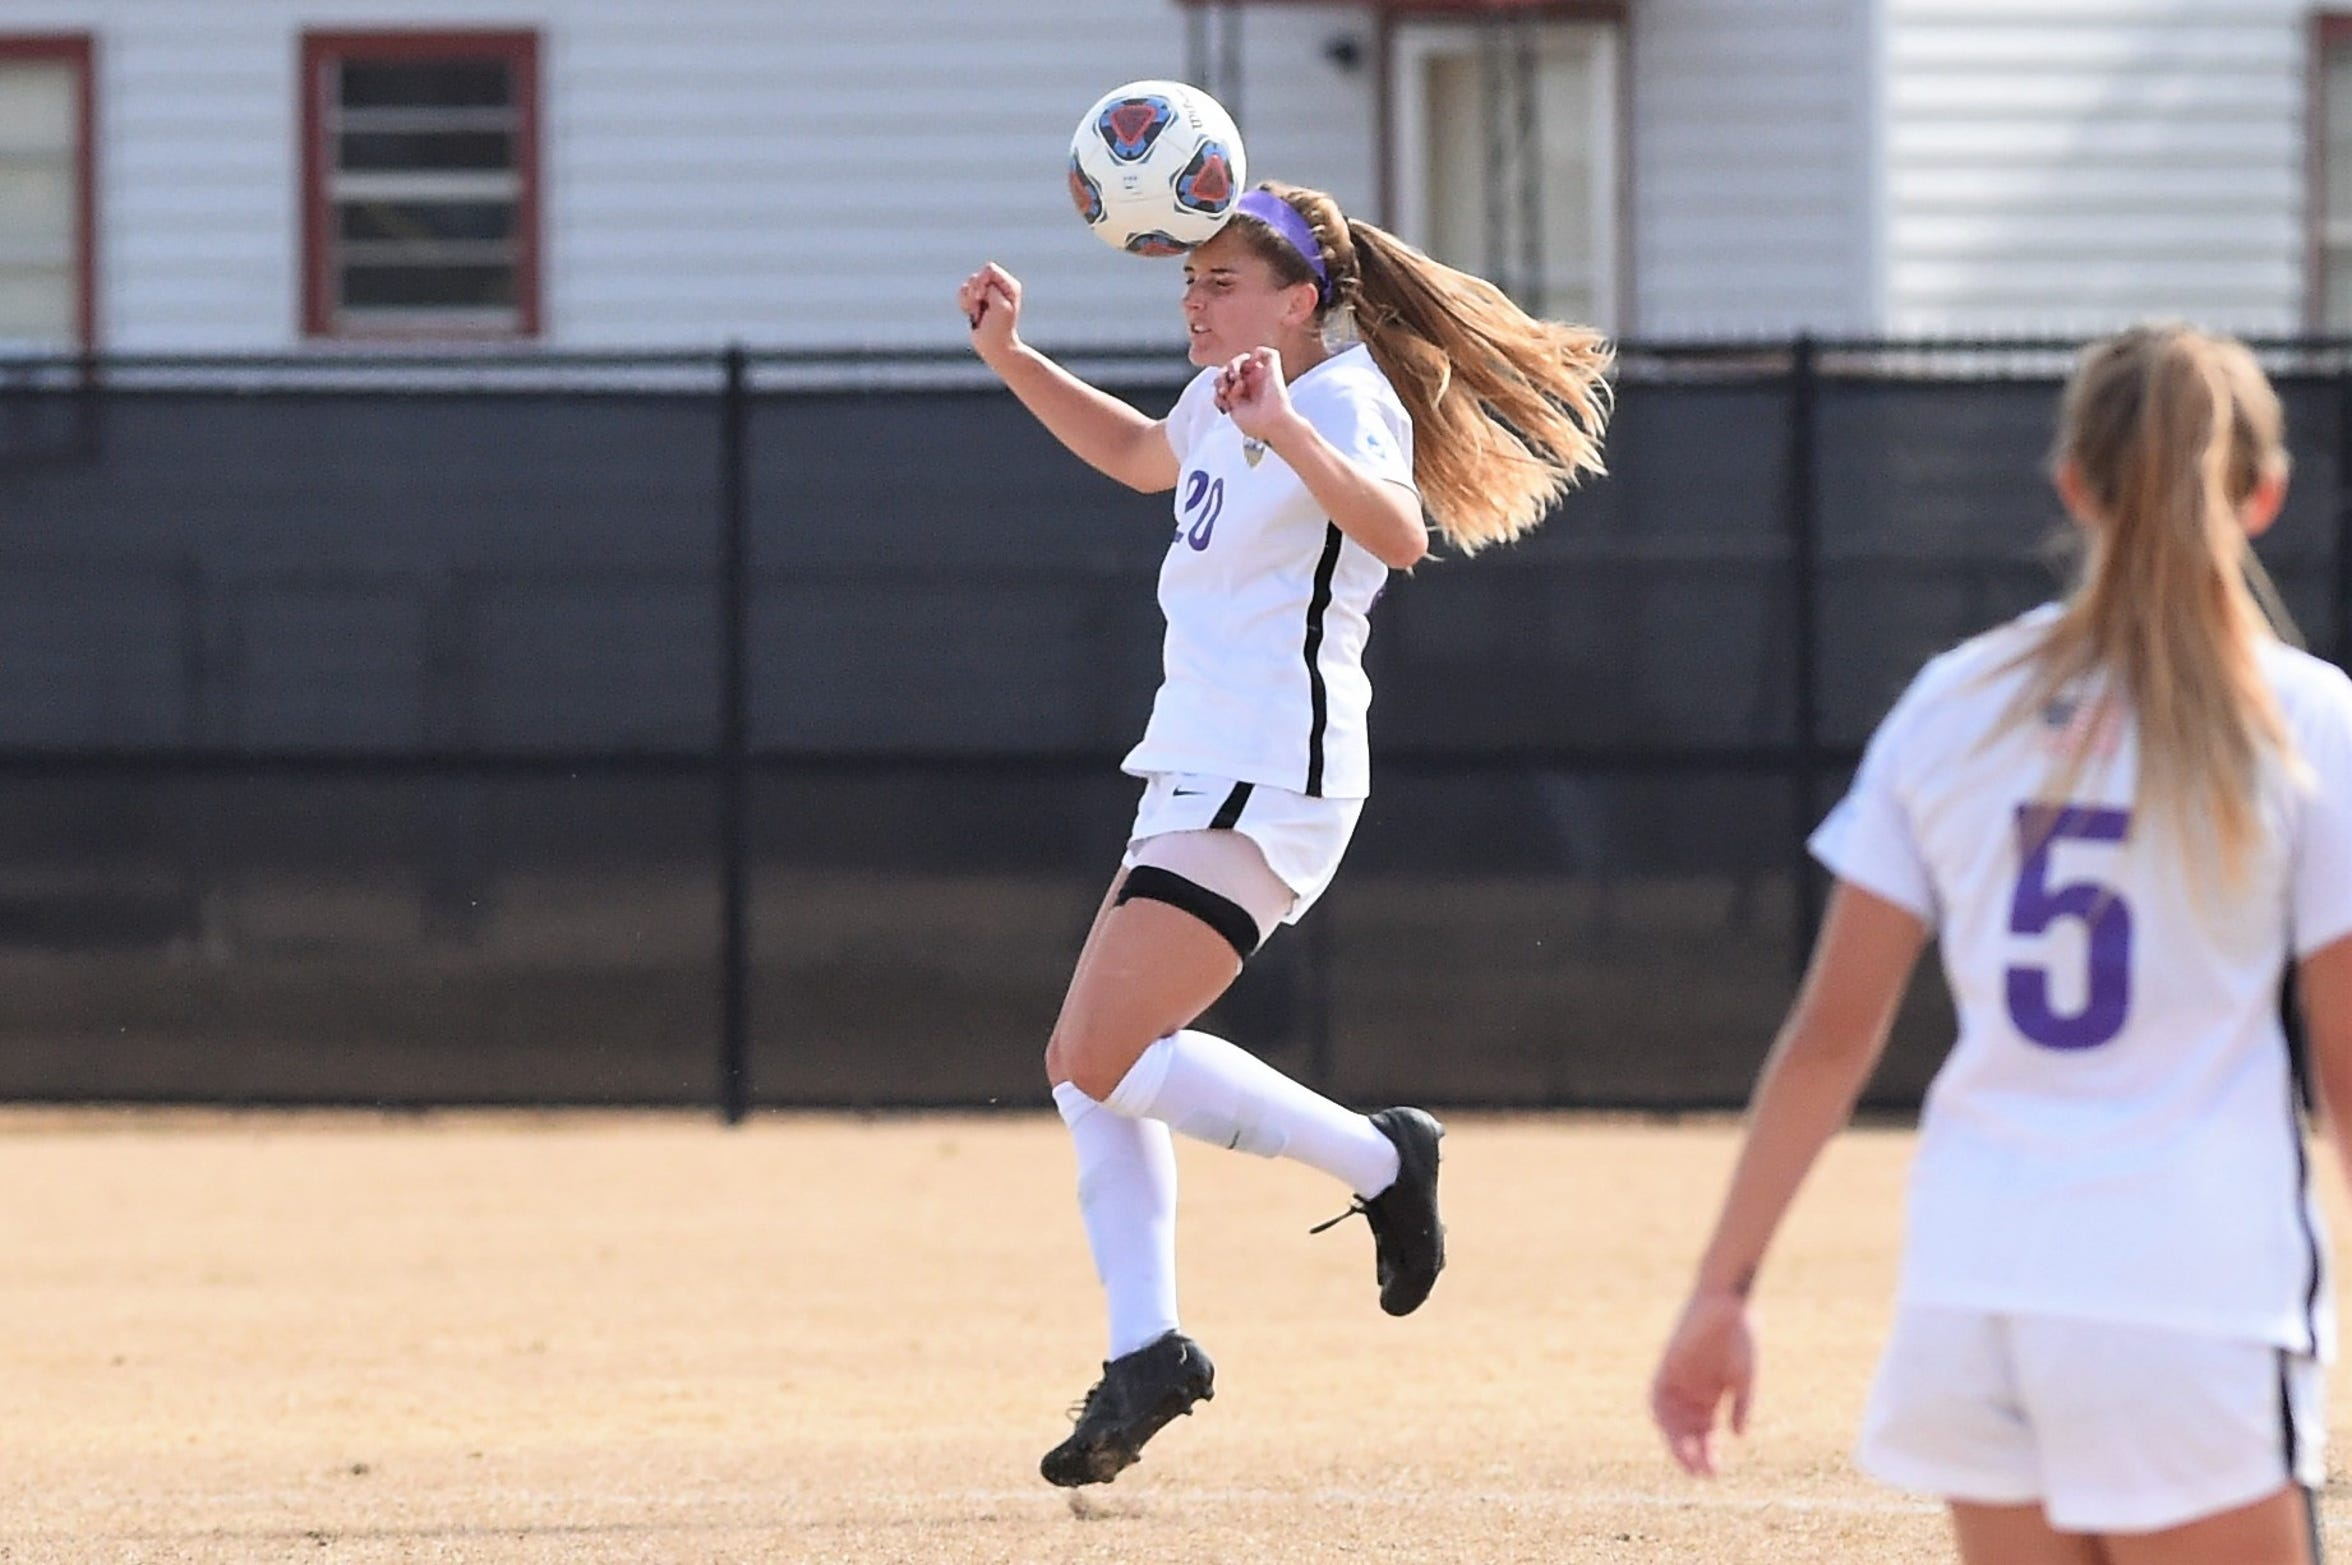 Hardin-Simmons midfielder Morgan McAdams (20) heads the ball against Mary Hardin-Baylor in the ASC tournament championship at the HSU Soccer Complex on Sunday, Nov. 10, 2019. The Cowgirls won 2-0 for their 17th-straight tournament title.